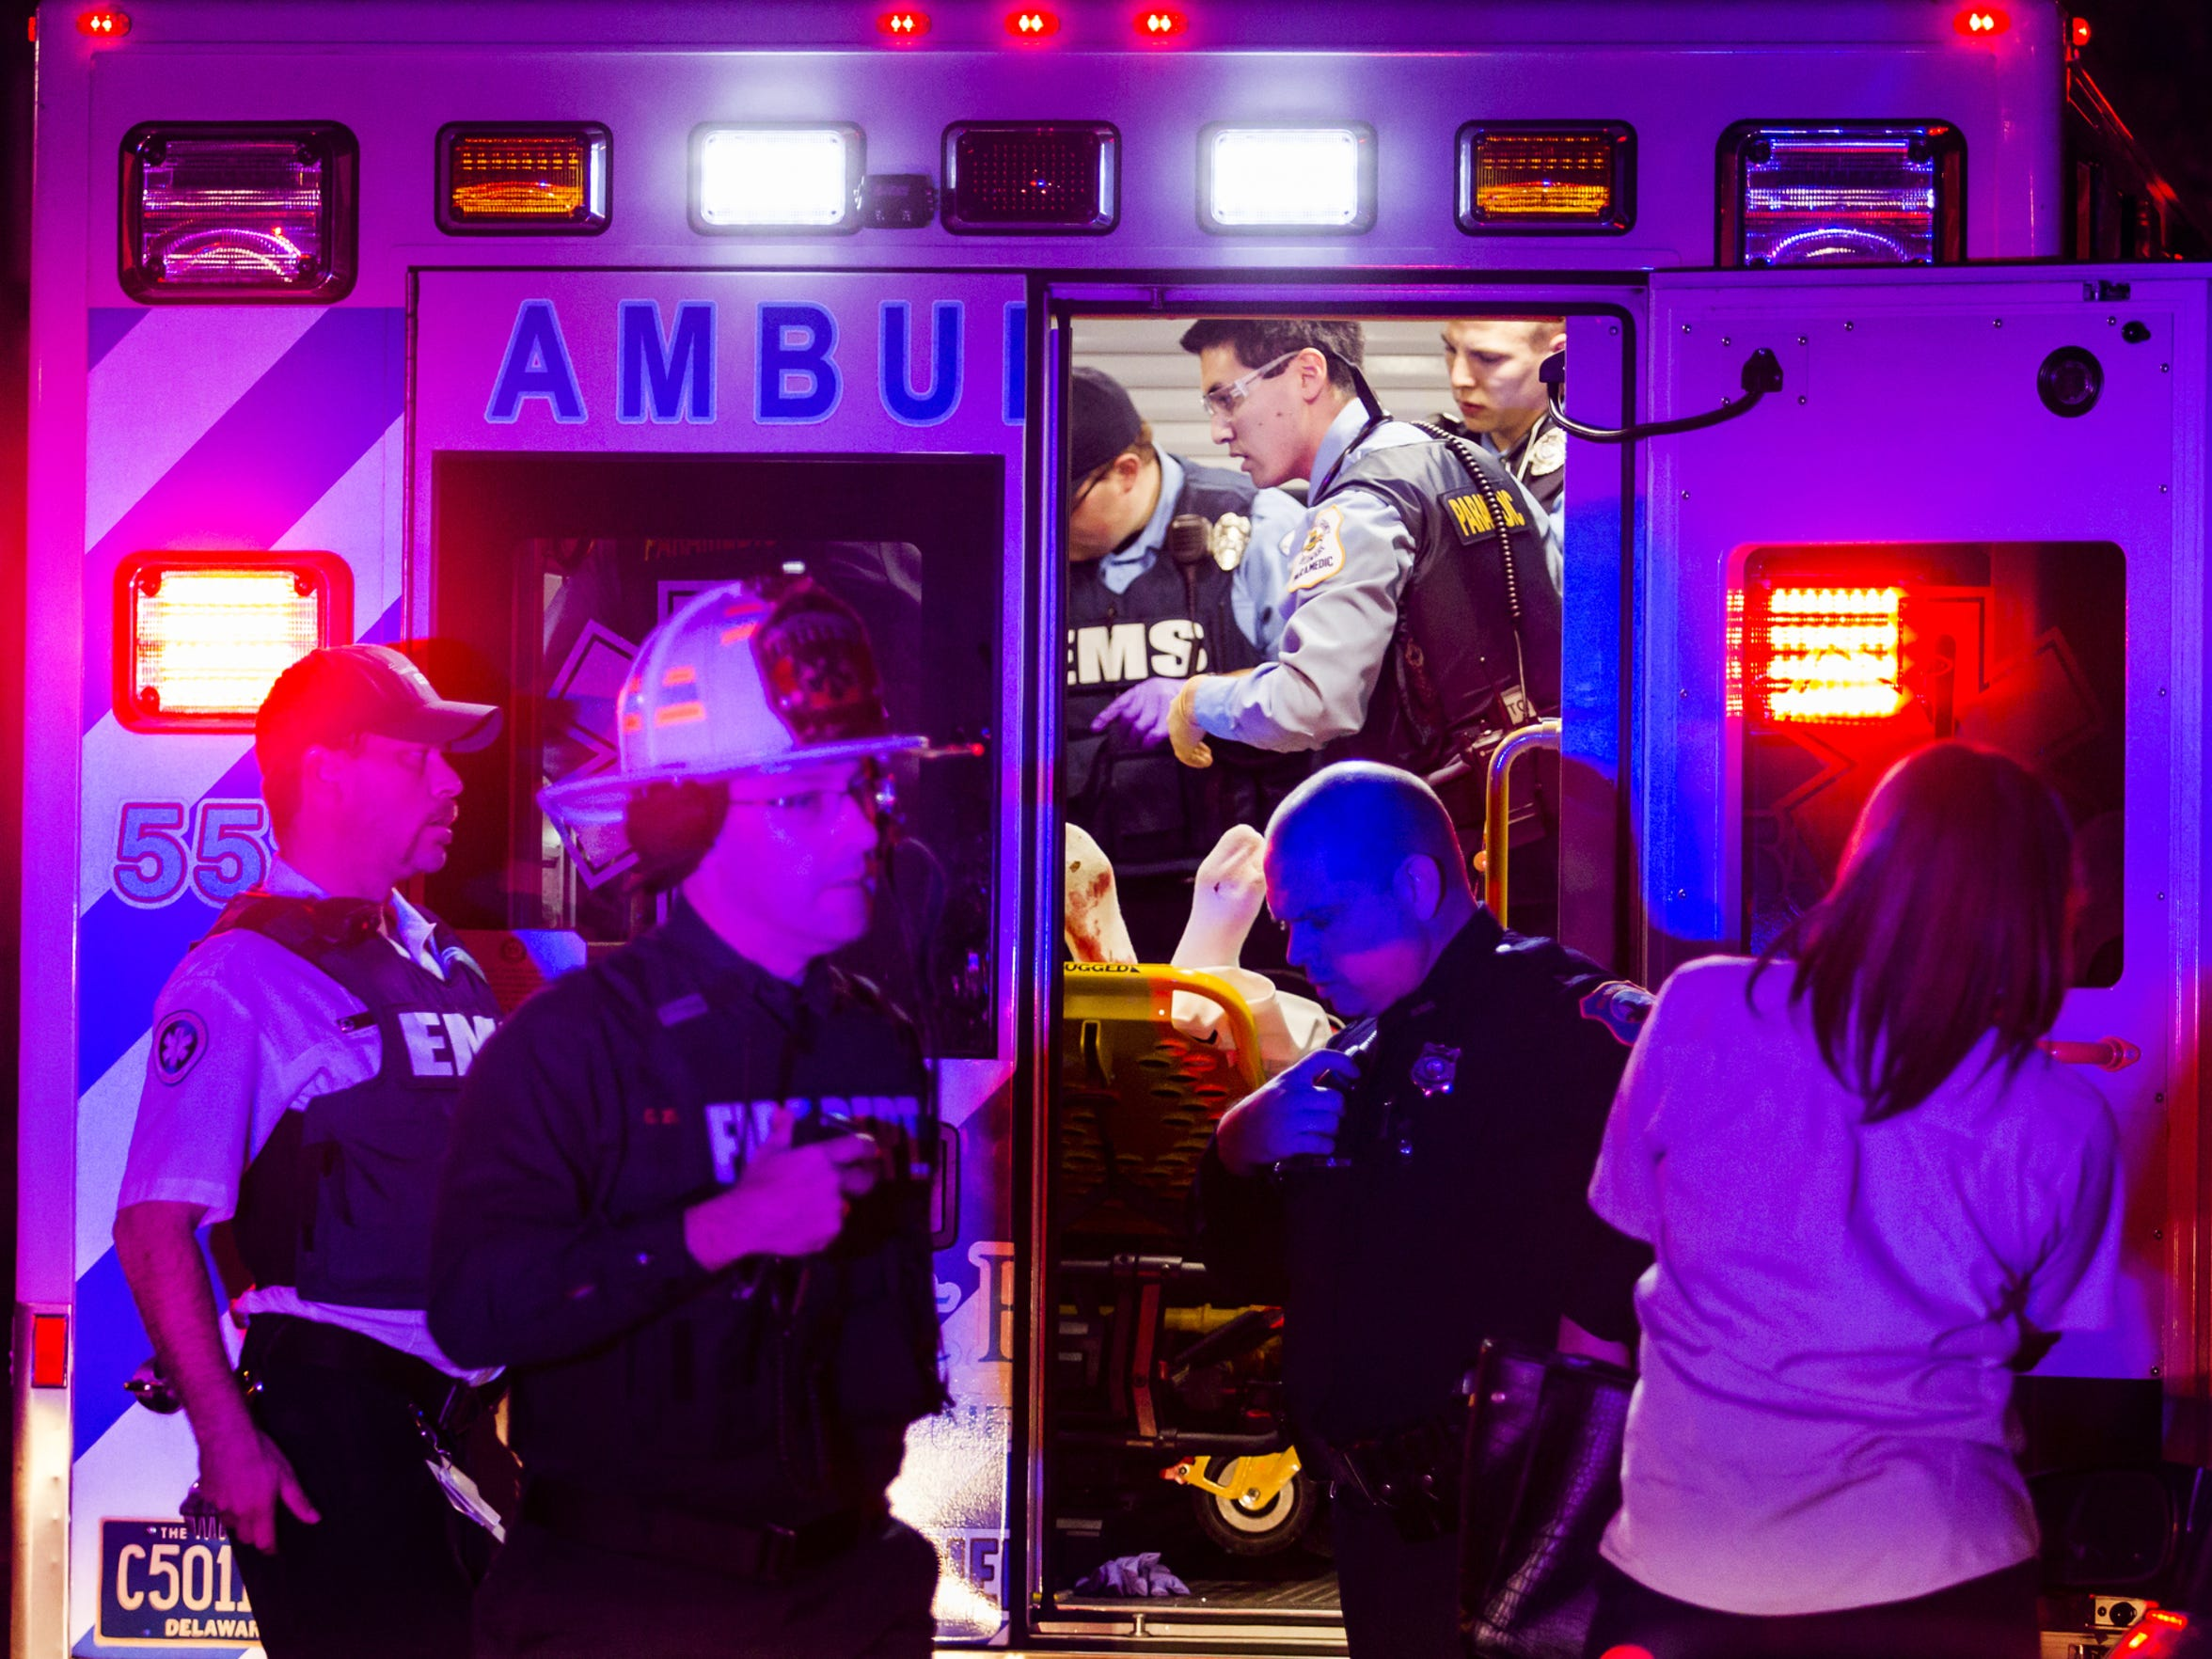 Emergency responders work on a person in an ambulance near the scene of a shooting on Taylor Street in Wilmington.